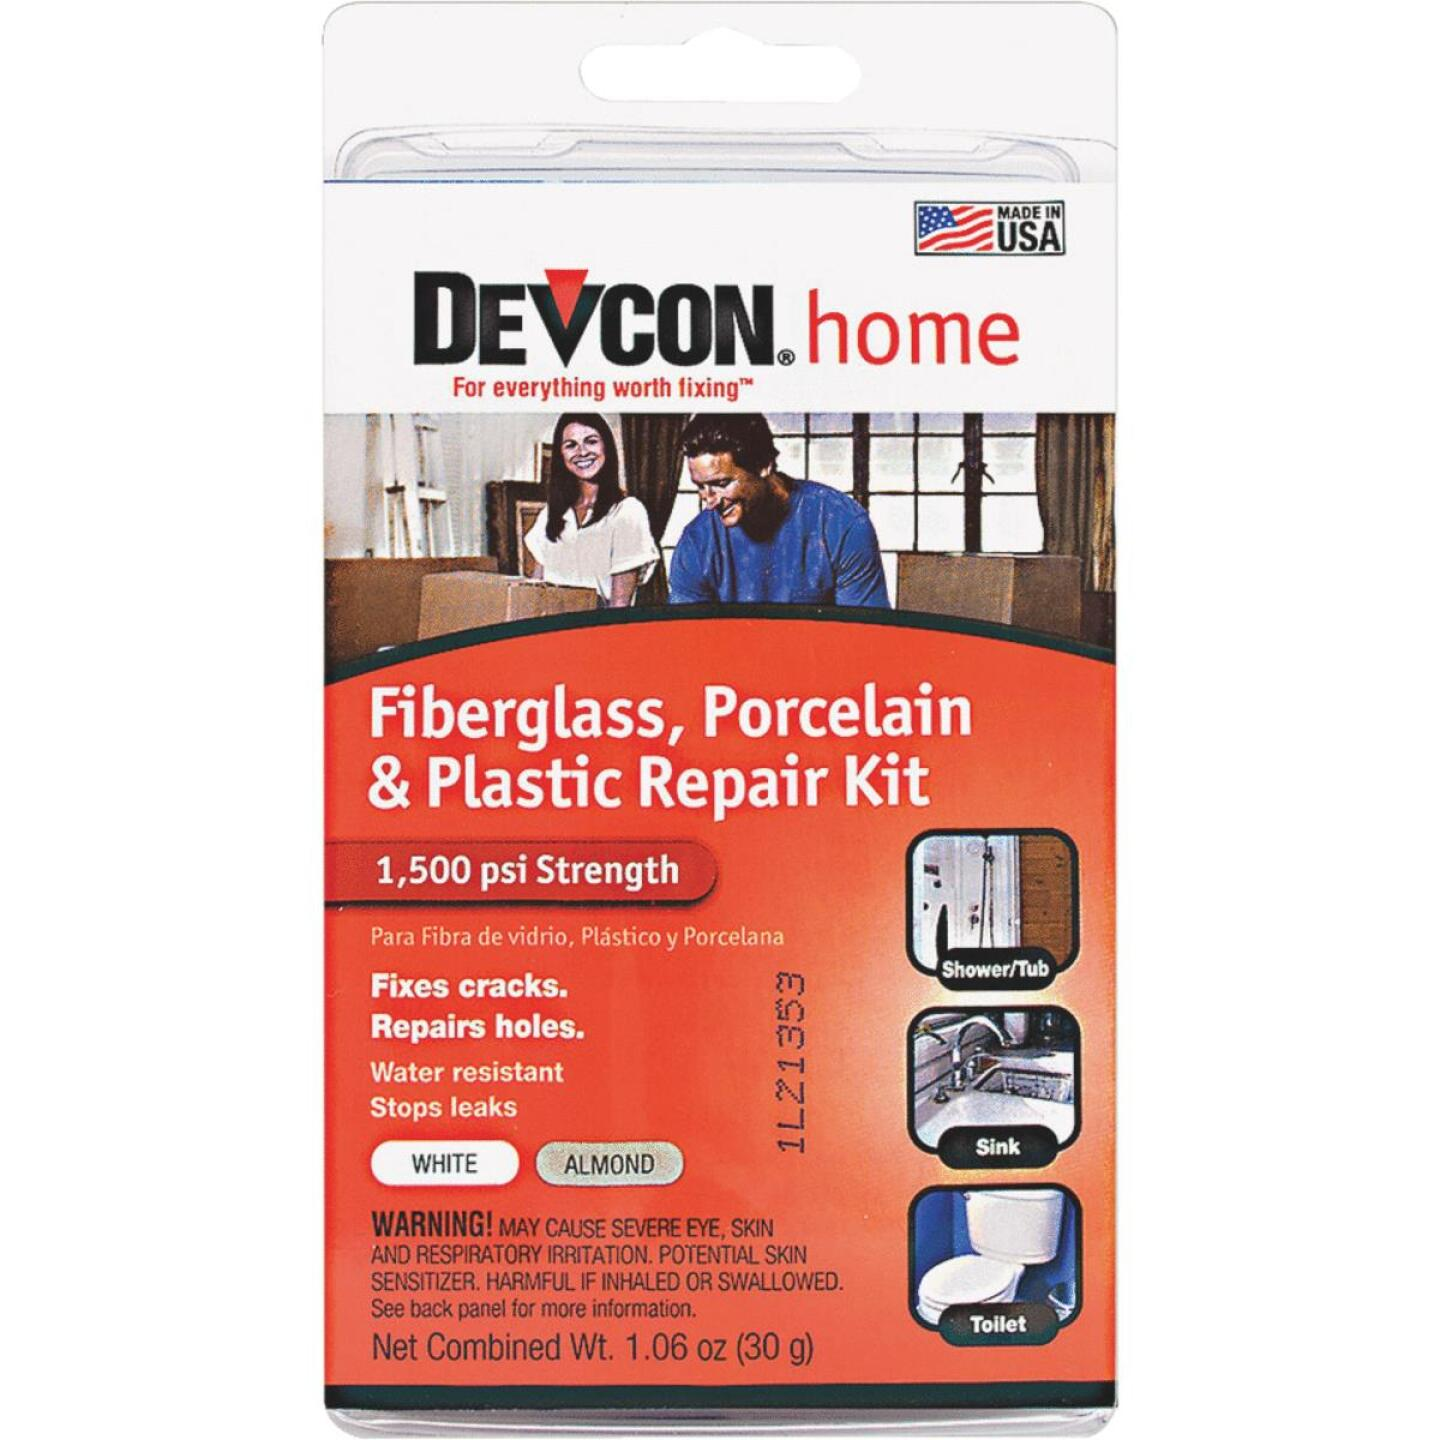 Devcon 1.06 Oz. Fiberglass, Porcelain & Plastic Epoxy Repair Kit Image 1